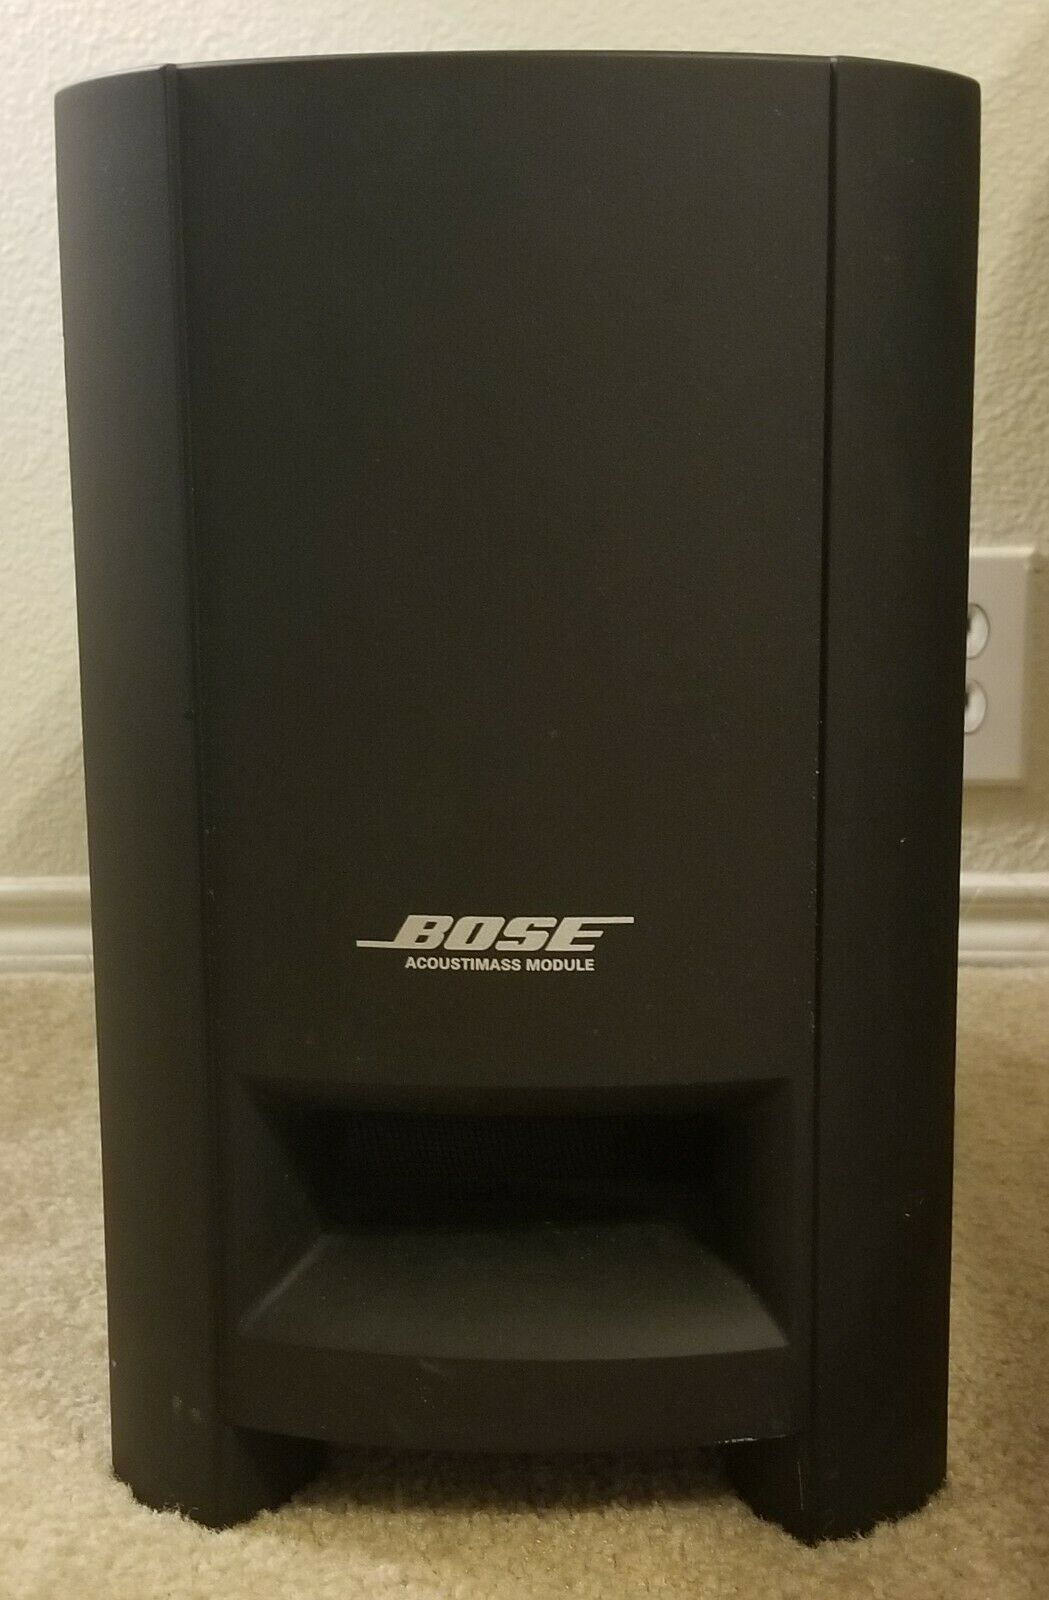 Bose Surround sound system. Buy it now for 300.00